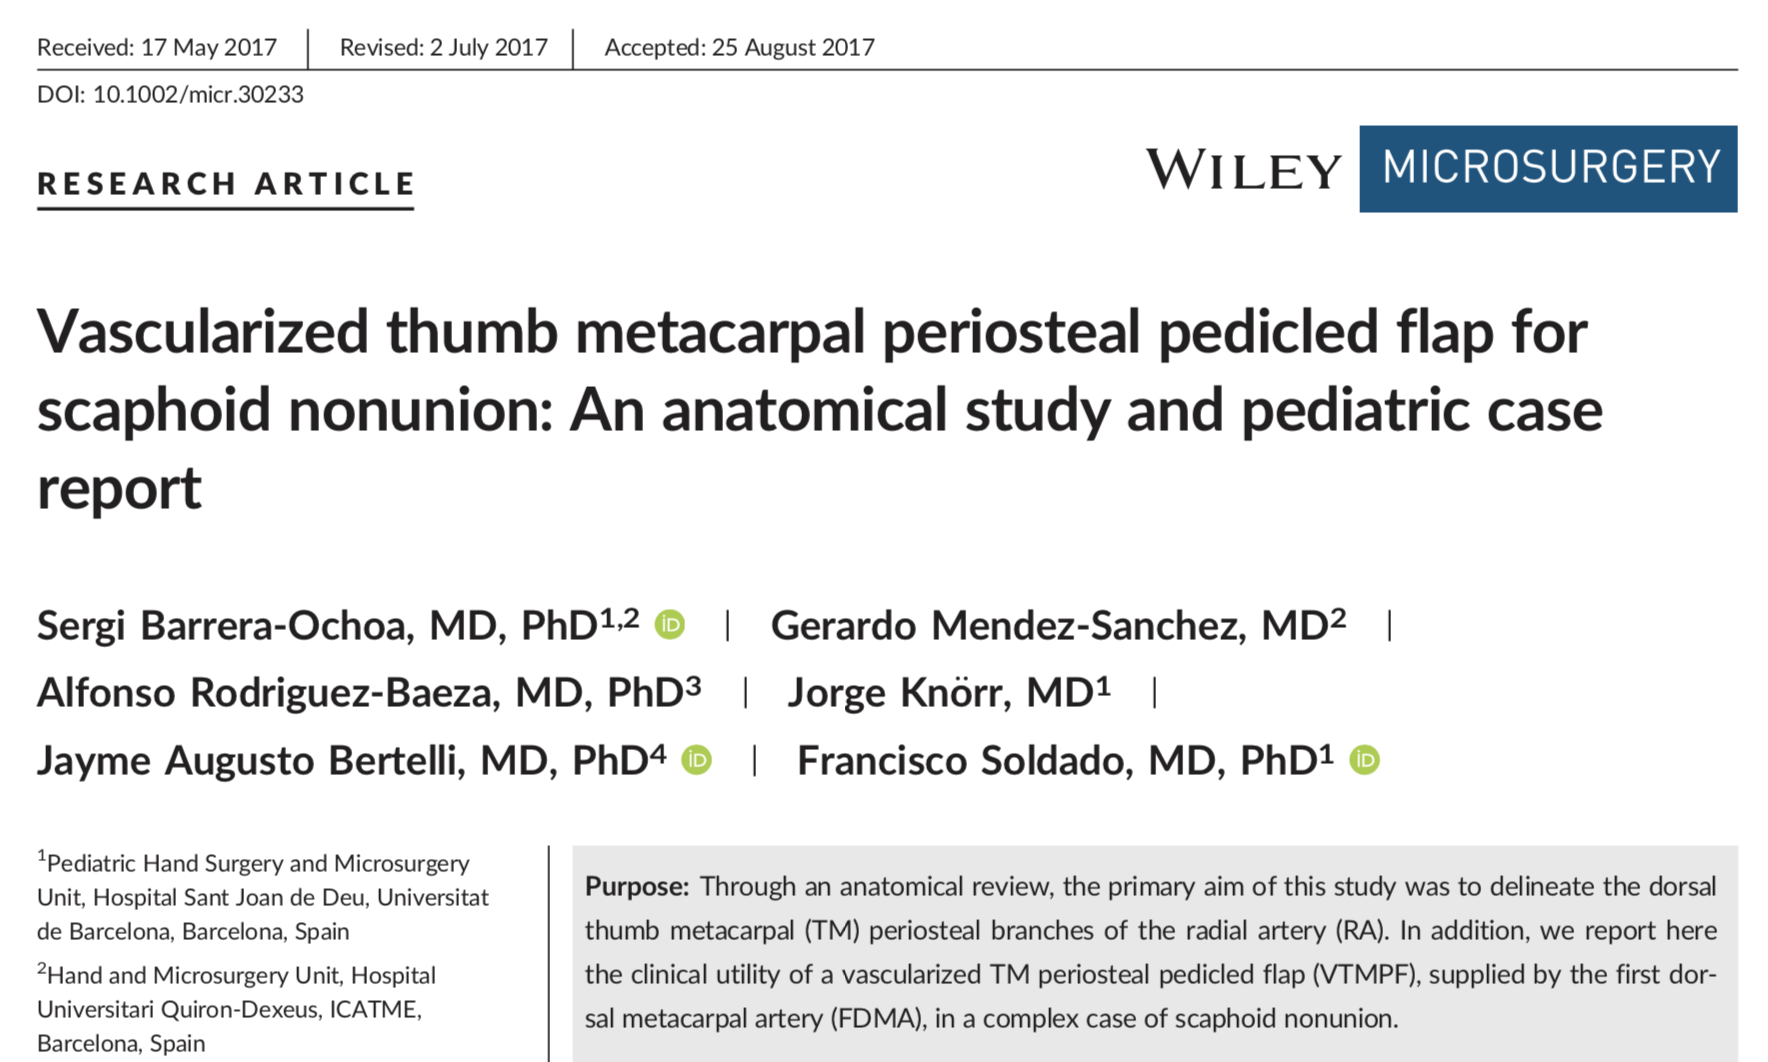 Vascularized thumb metacarpal periosteal pedicled flap for scaphoid nonunion: An anatomical study and pediatric case report